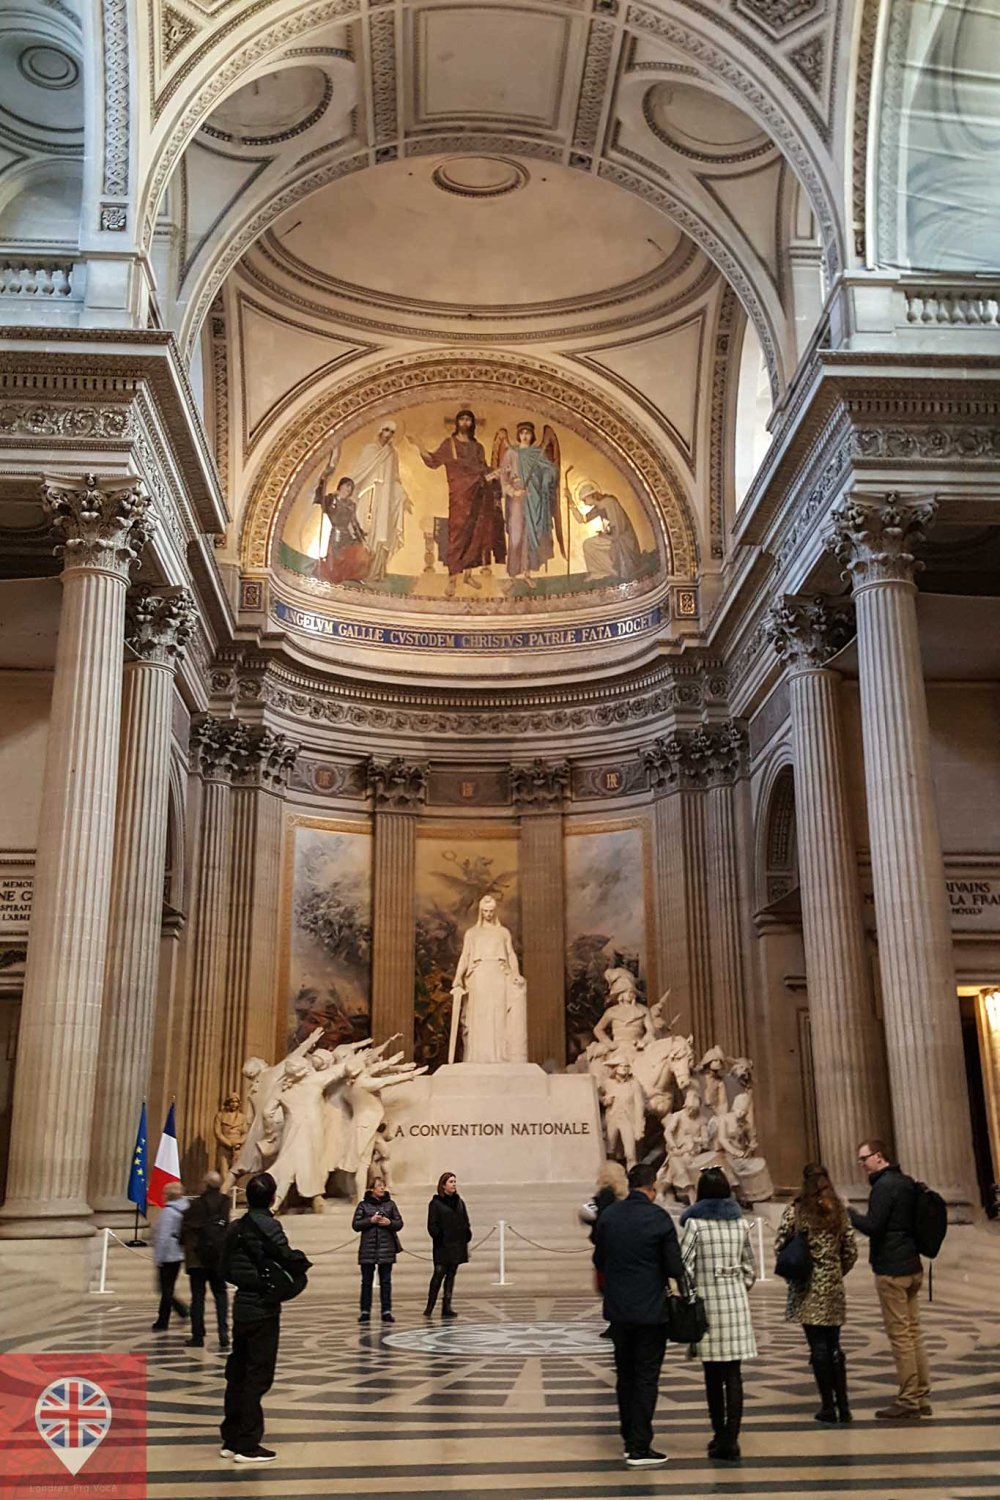 paris pantheon interior